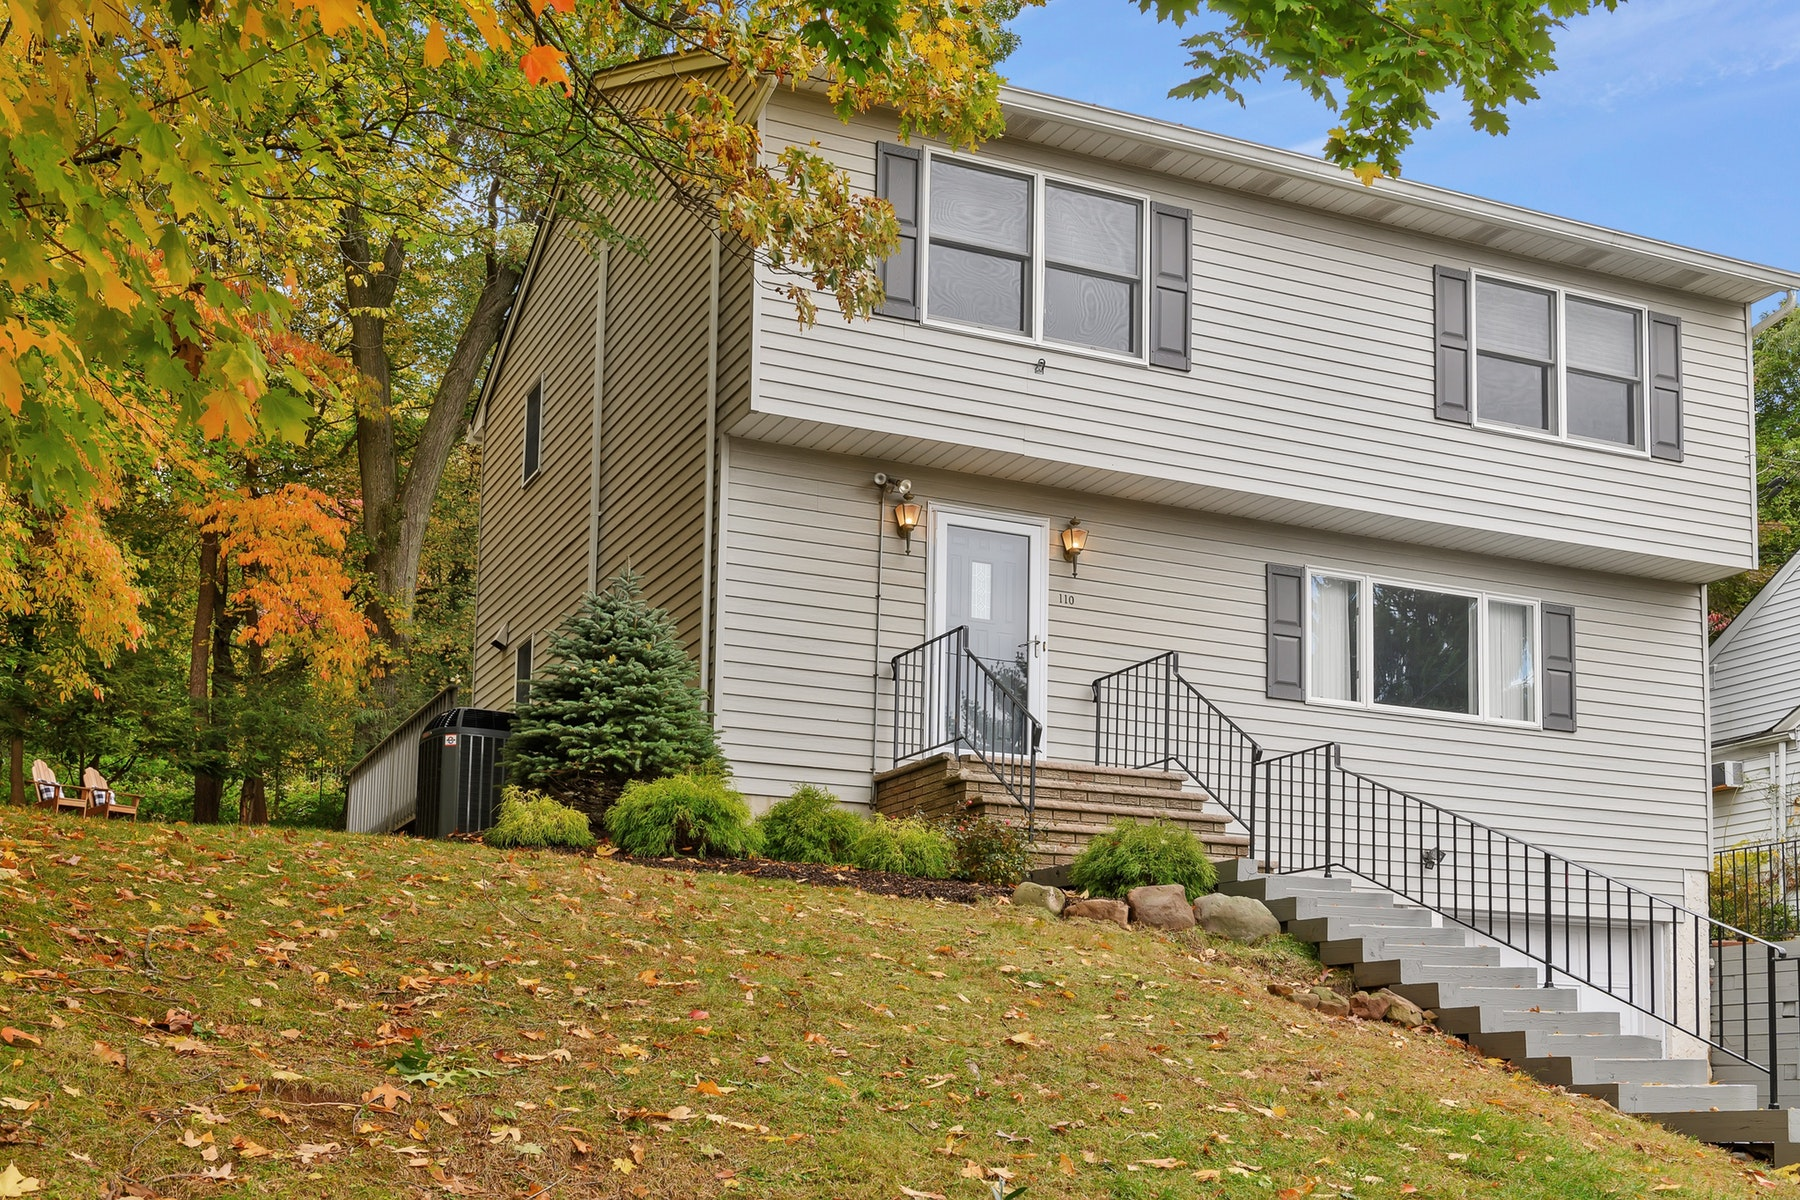 Single Family Homes for Sale at Snugged in the woods colonial 110 Mc Cosh Rd. Clifton, New Jersey 07043 United States